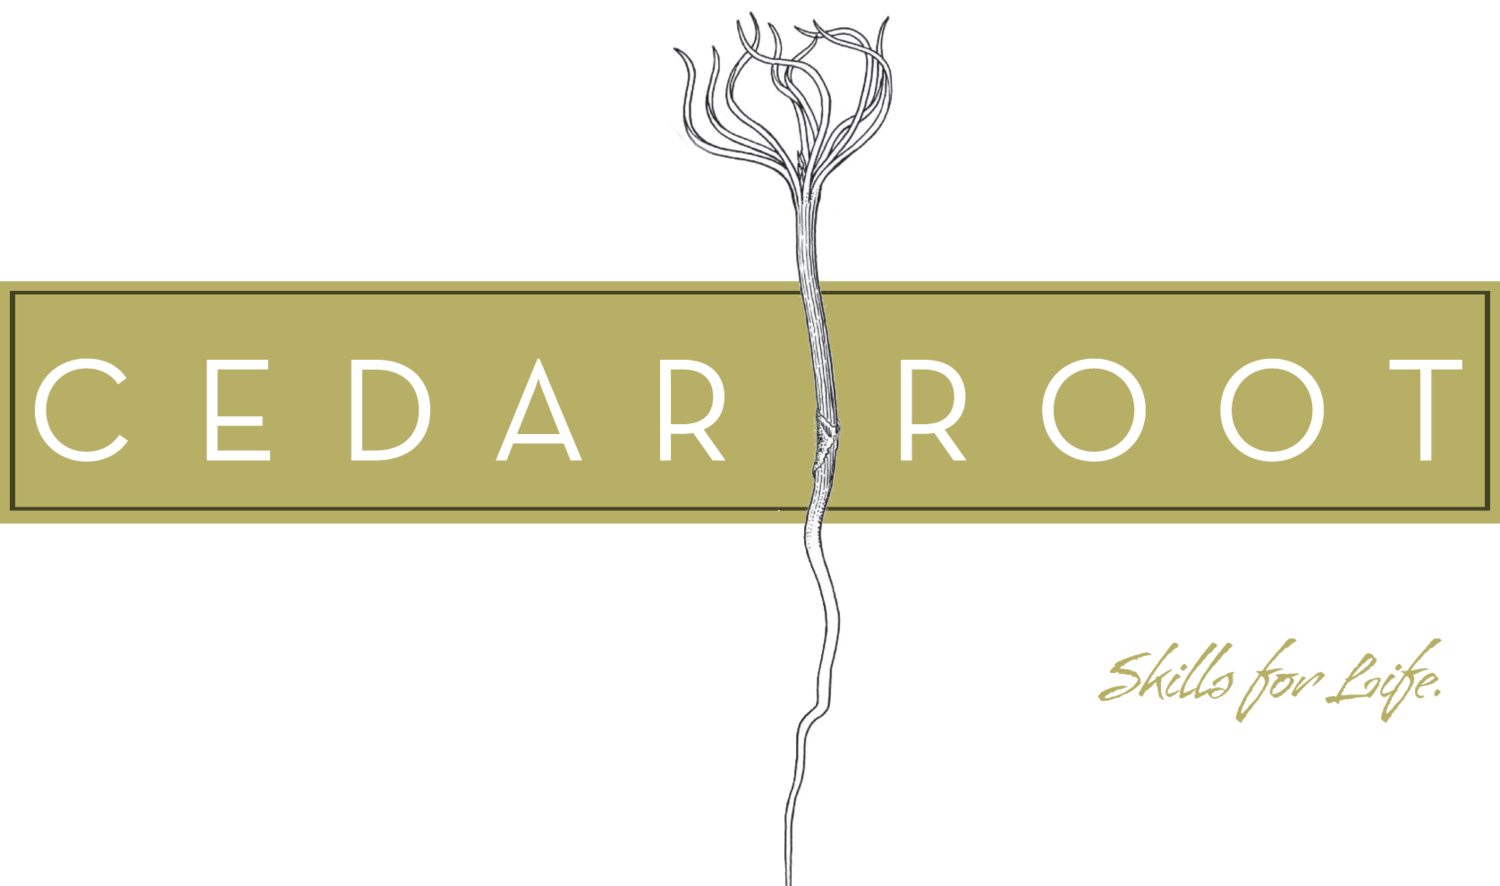 CedarRoot School